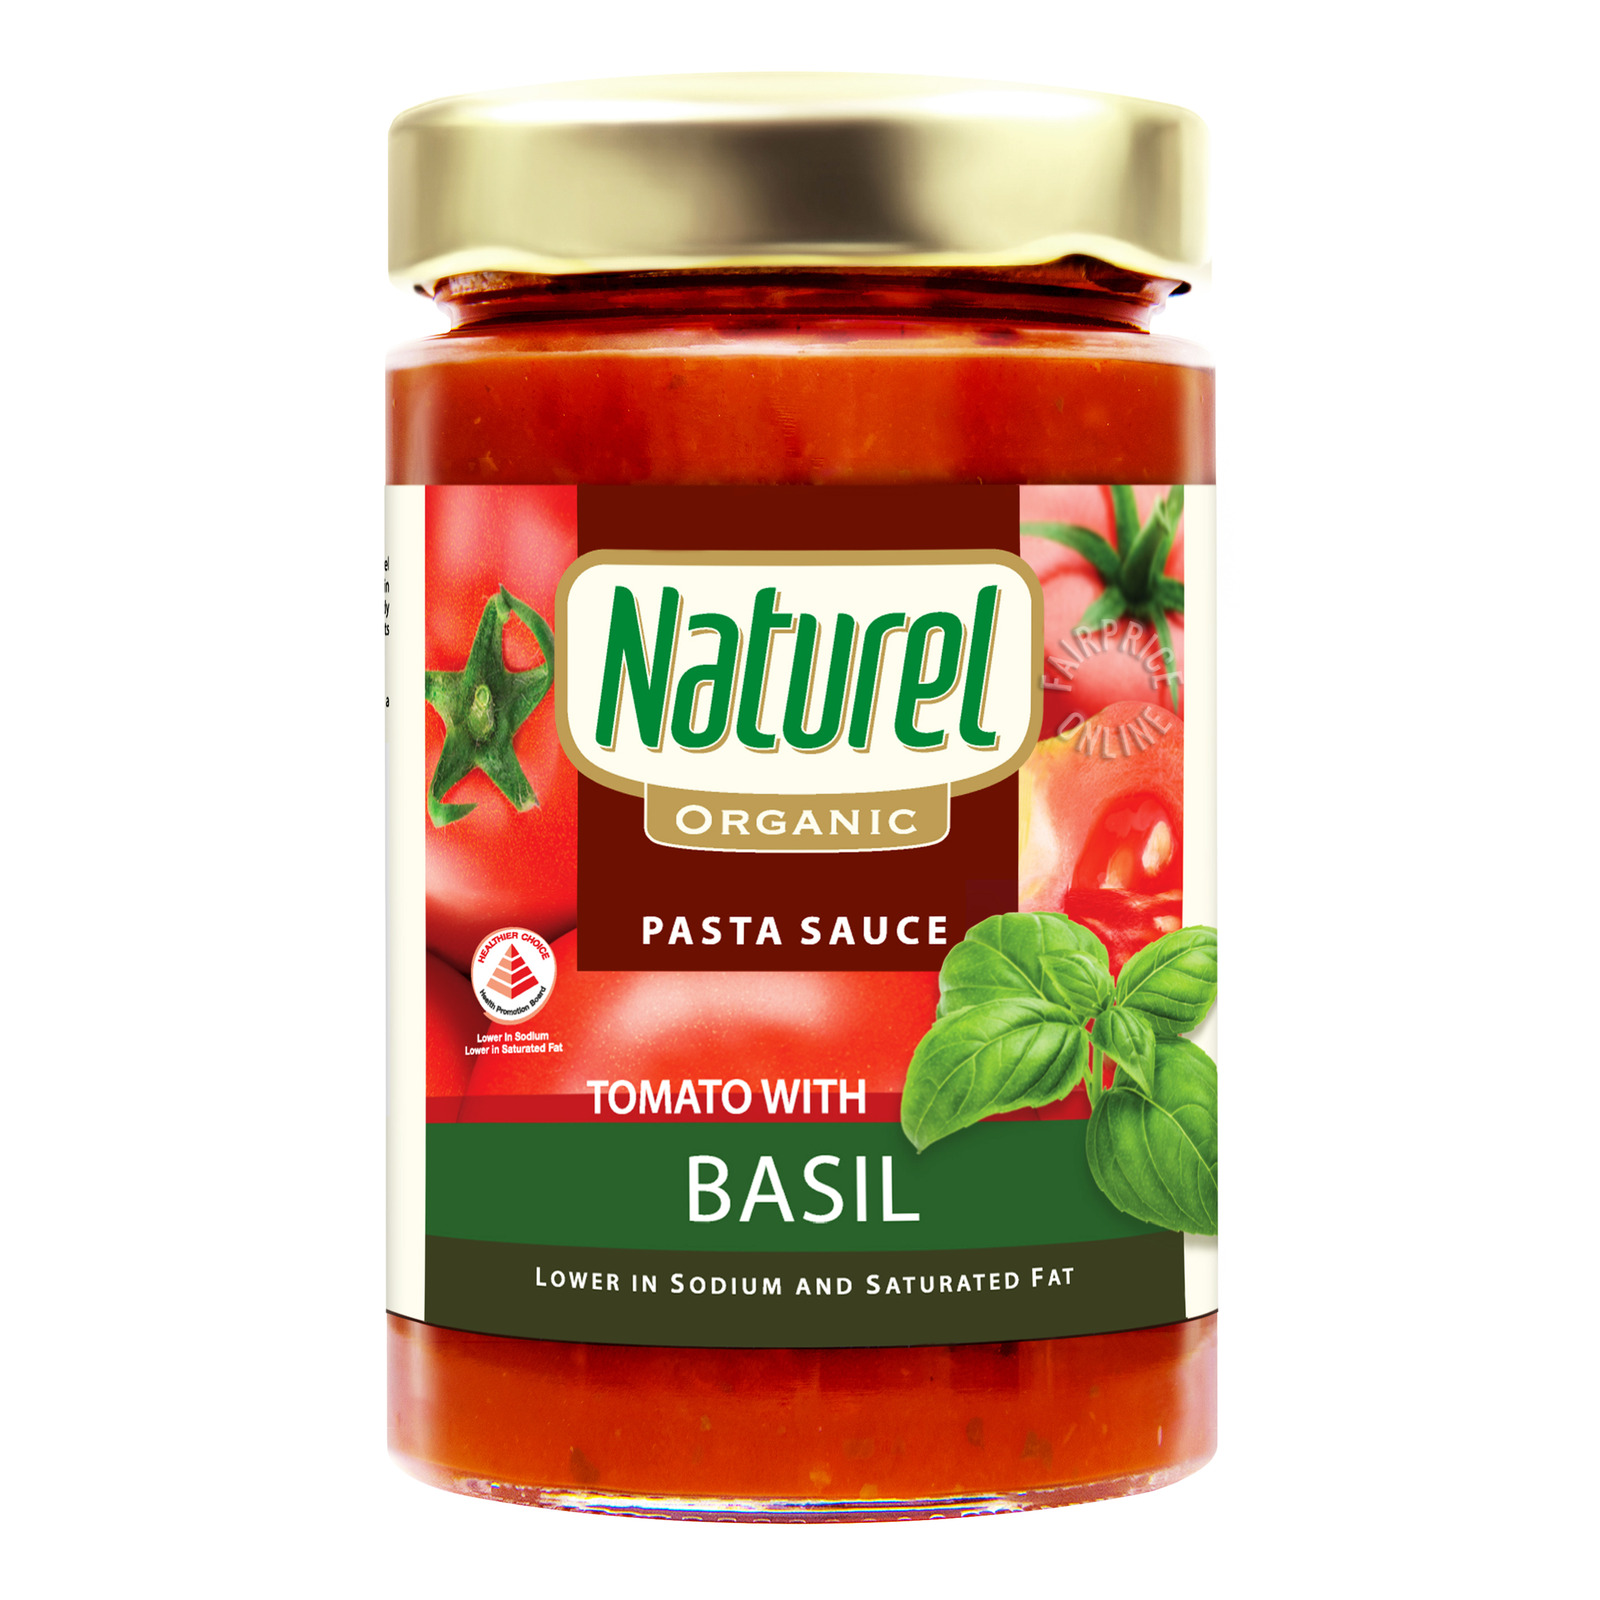 Naturel Organic Pasta Sauce - Tomato with Basil